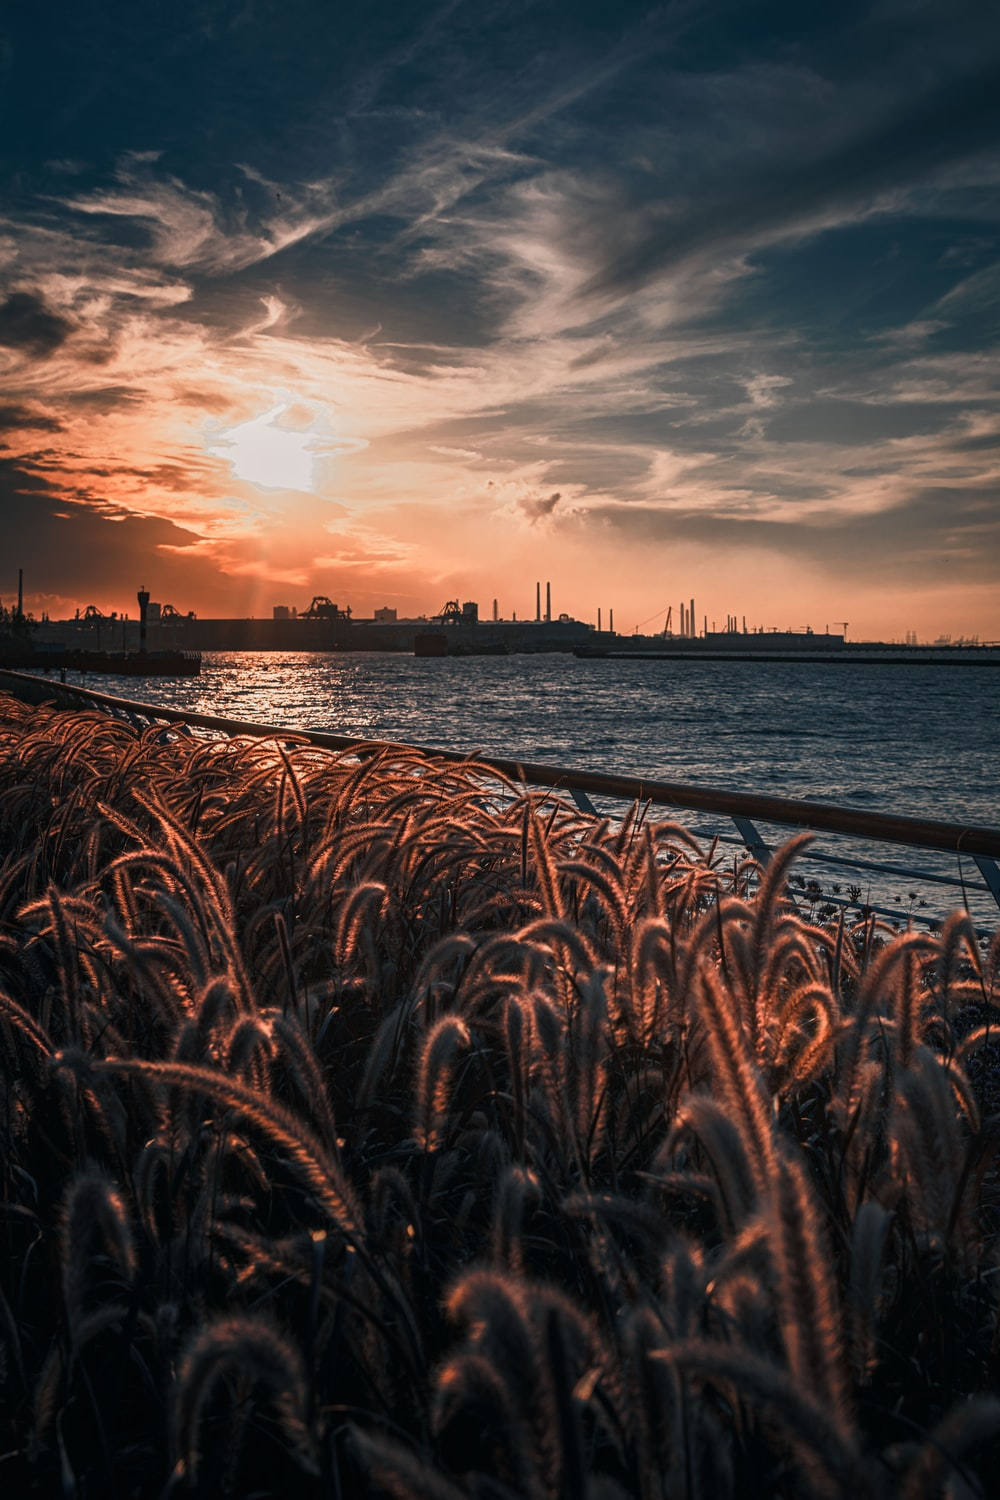 brown grass near body of water during sunset